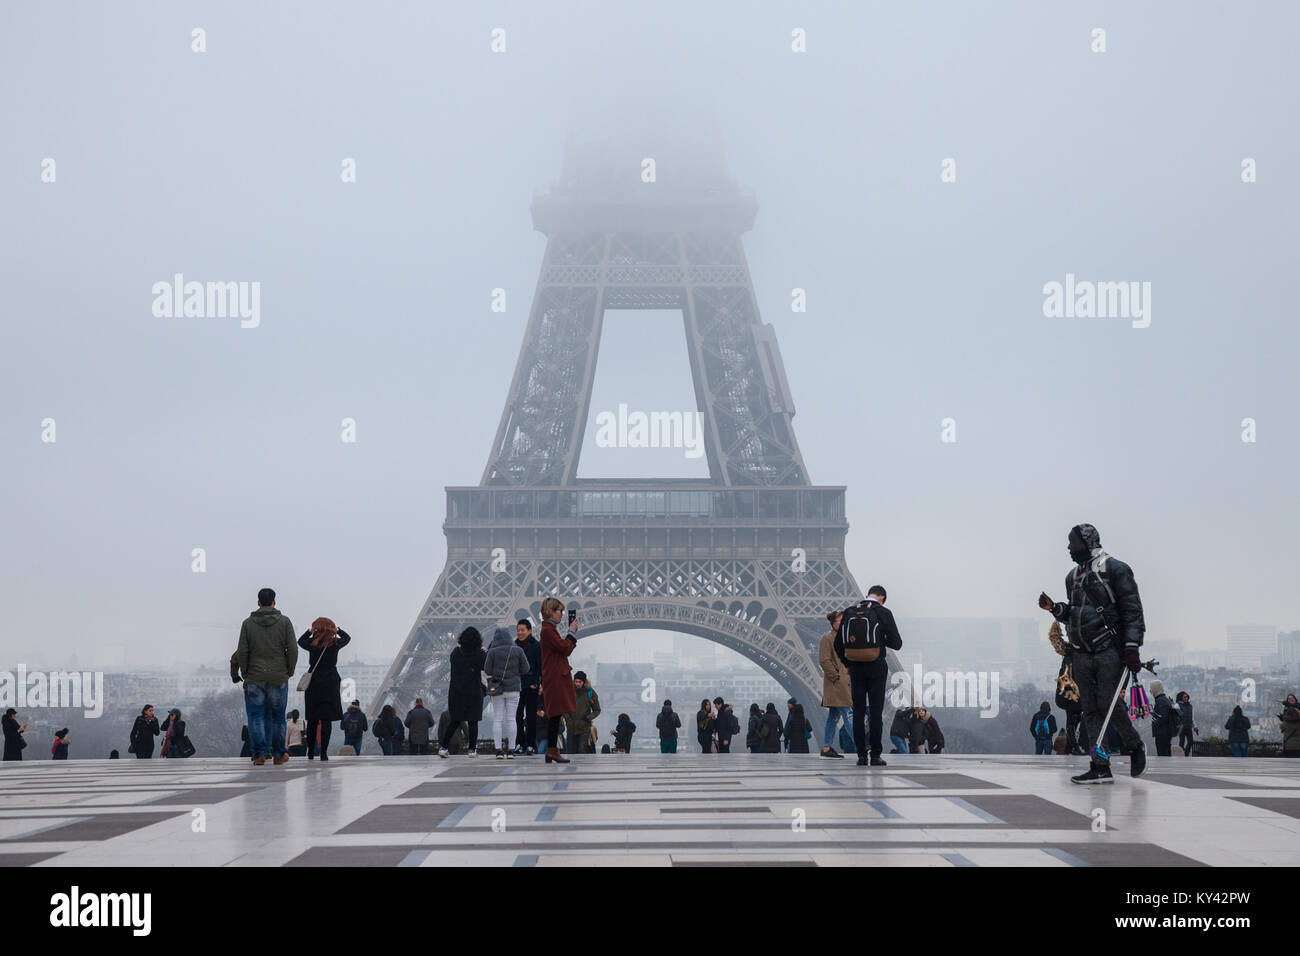 PARIS, FRANCE - DECEMBER 19, 2017: Tourists taking pictures in front of the Eiffel Tower, the top of the tower hidden - Stock Image